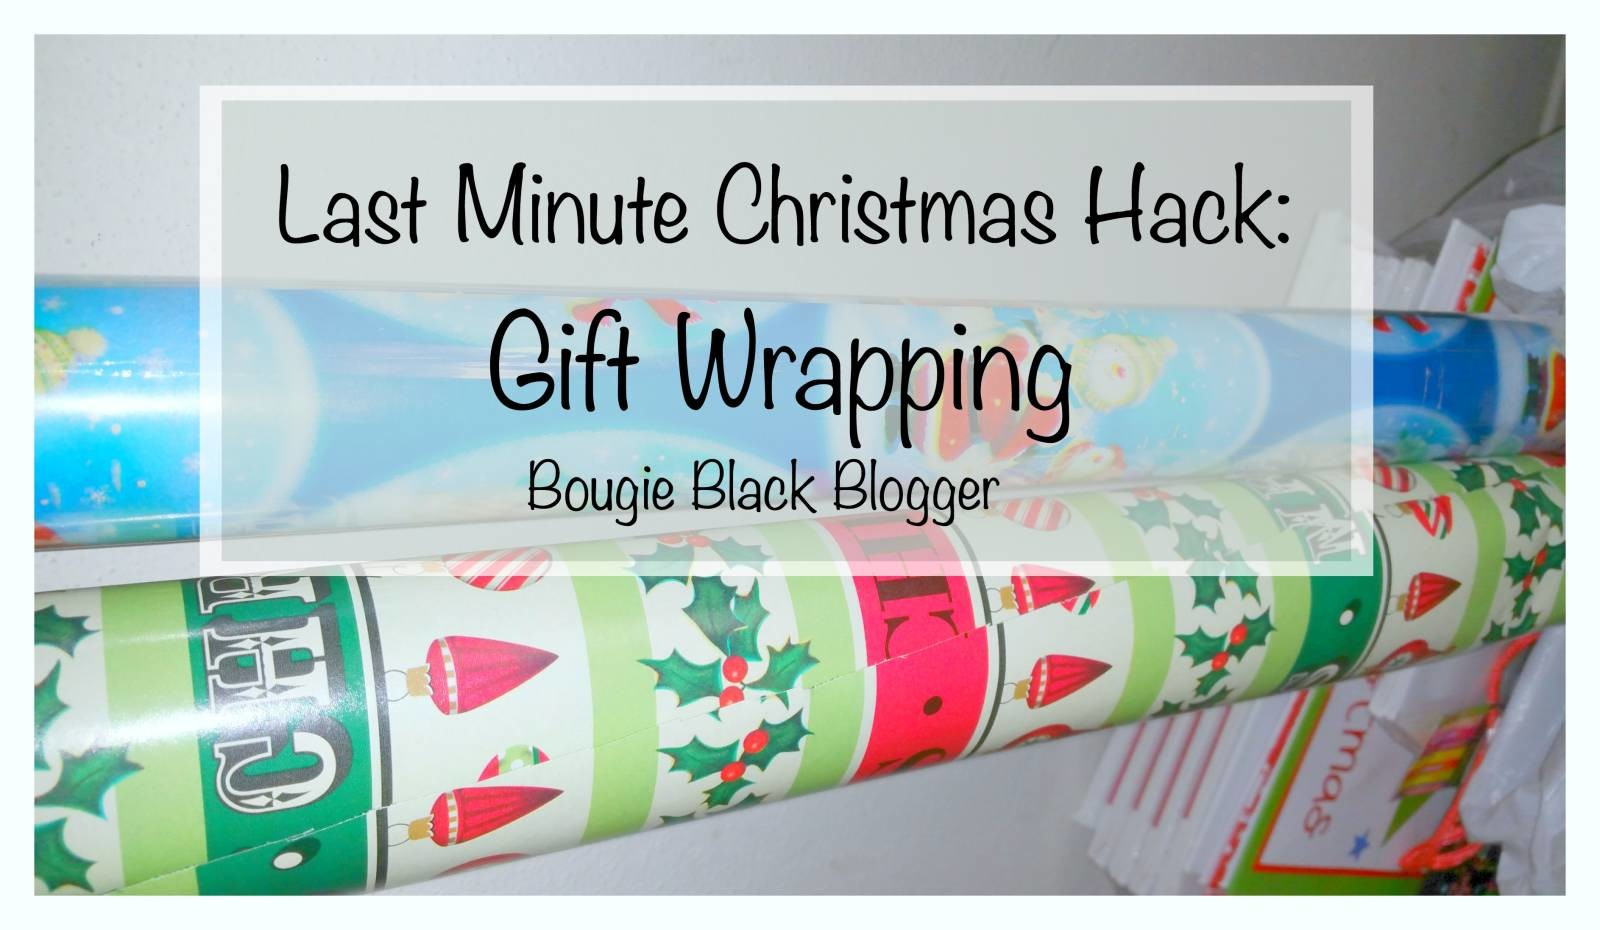 Last Minute Christmas Hack: Gift Wrapping